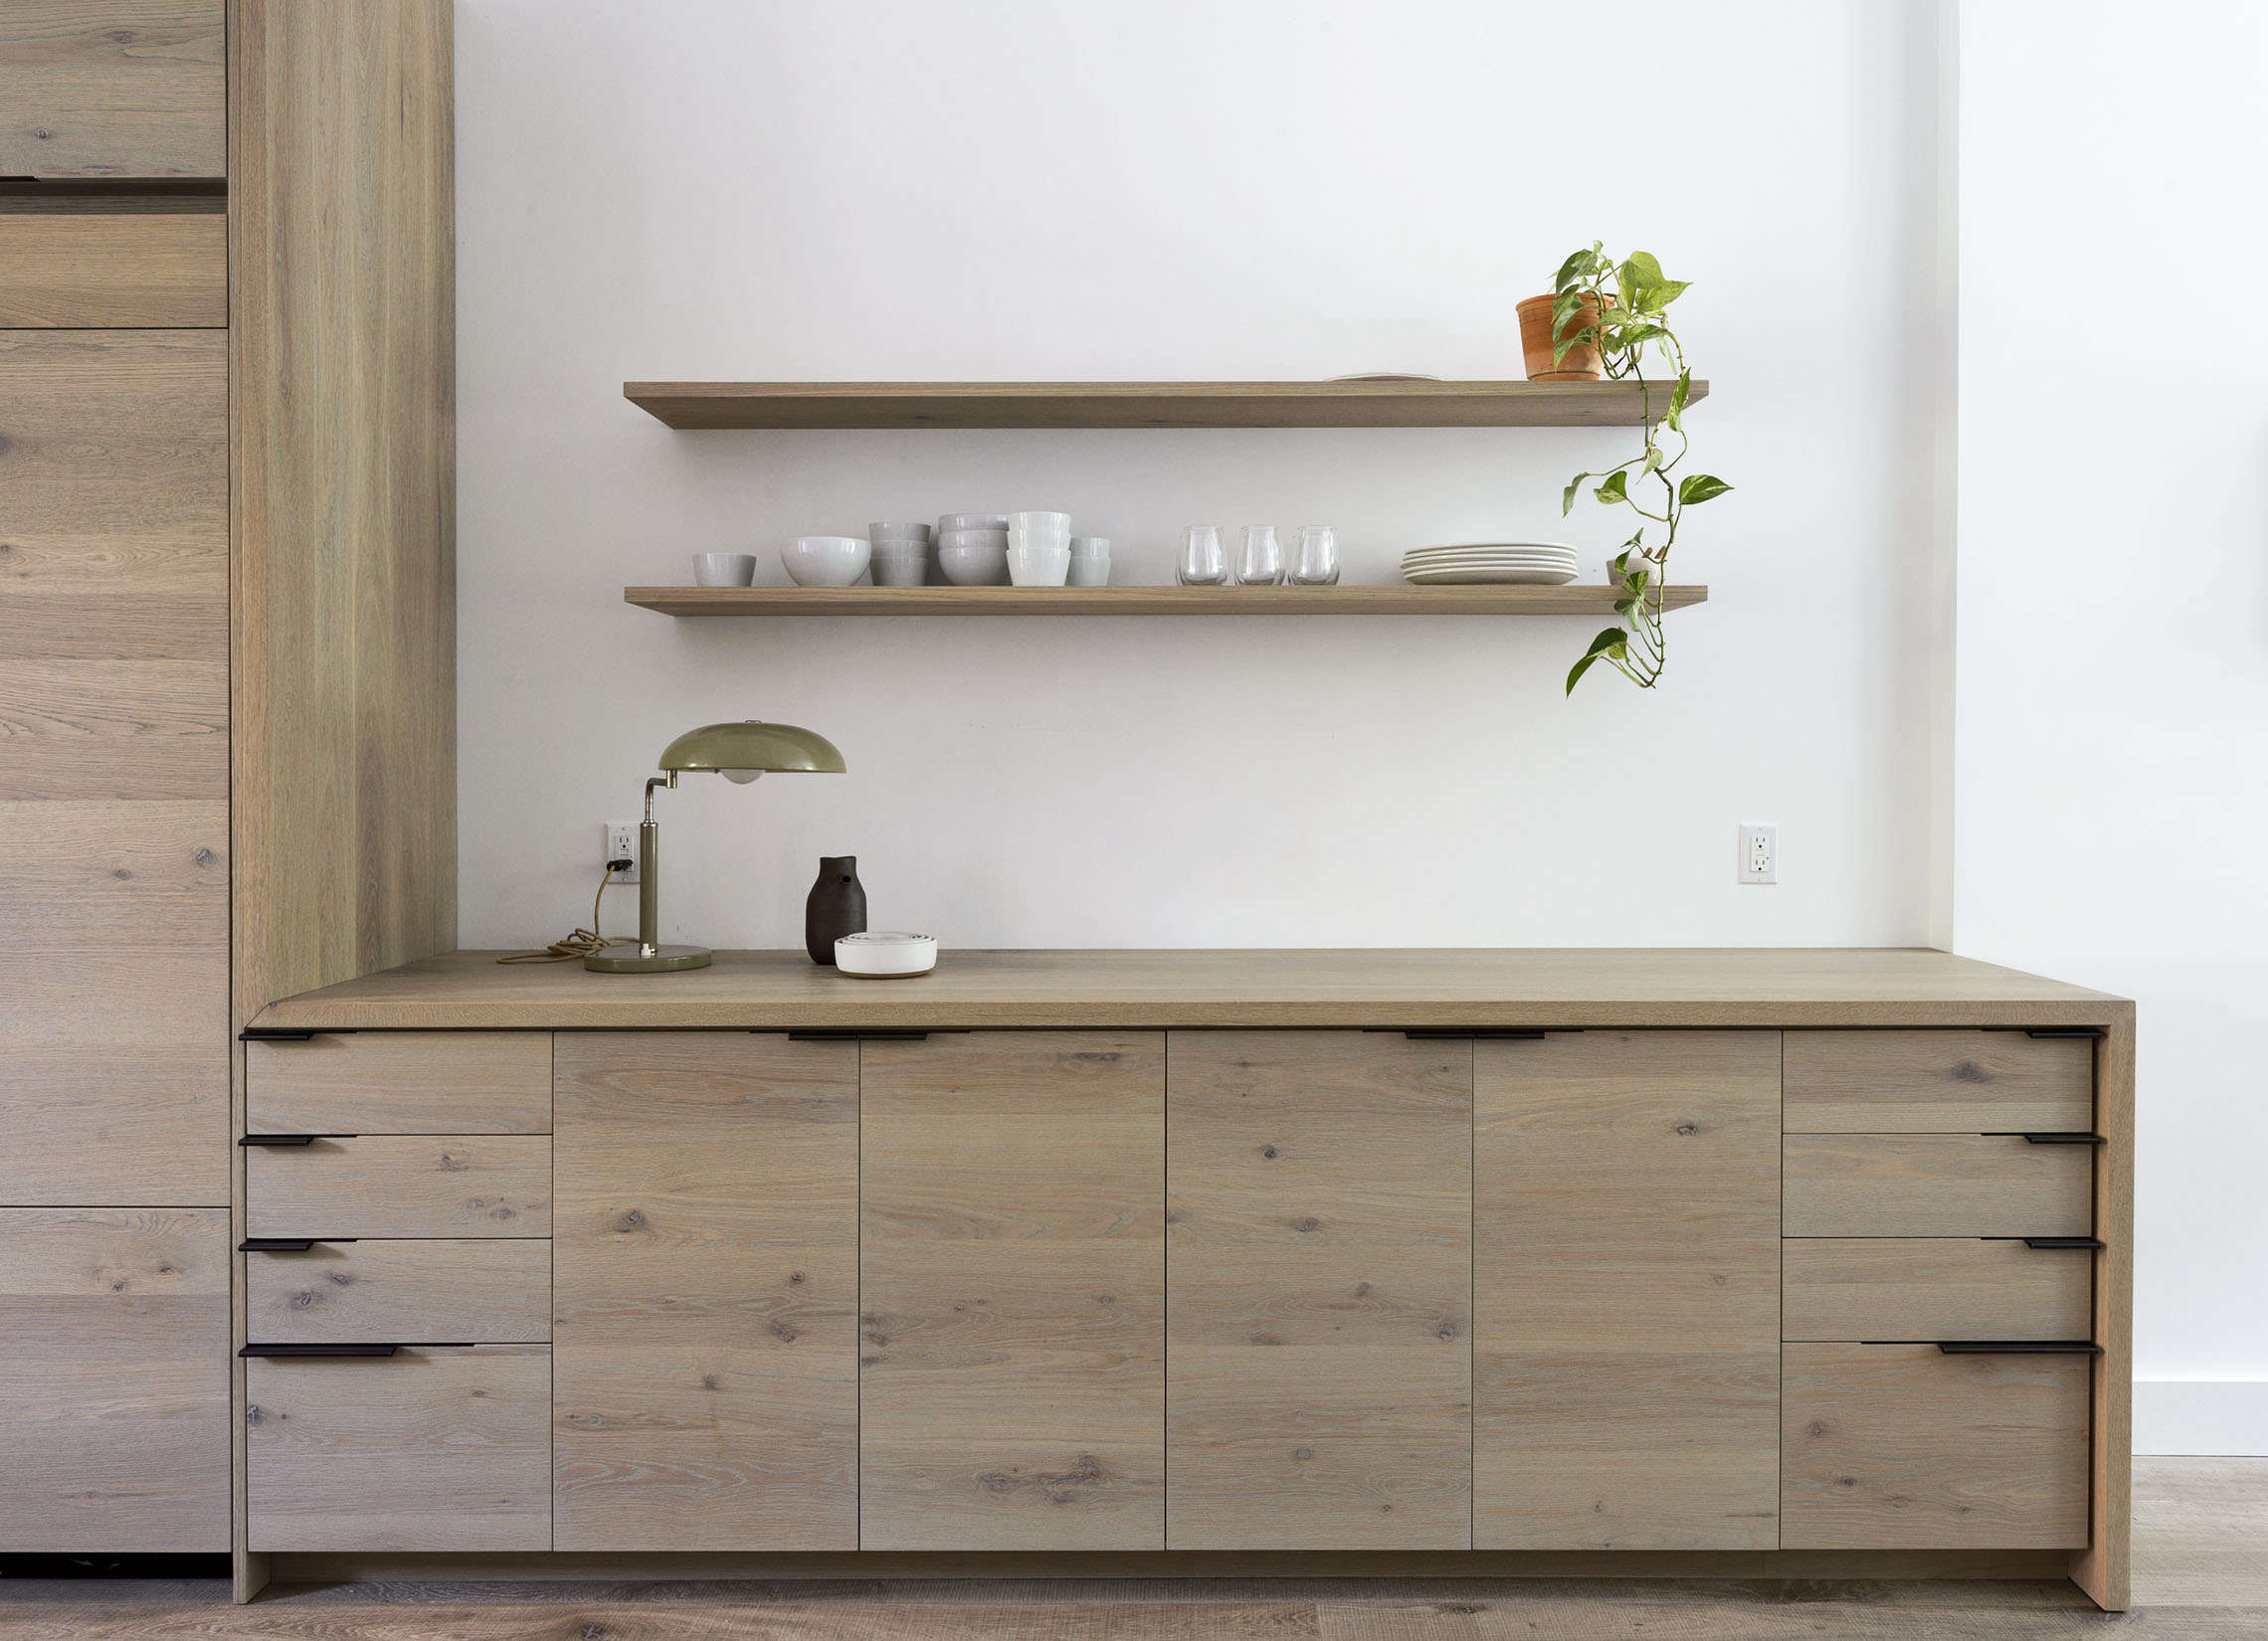 Brooklyn dining area with custom oak cabinets, design by Workstead, Matthew Williams photo | Remodelista